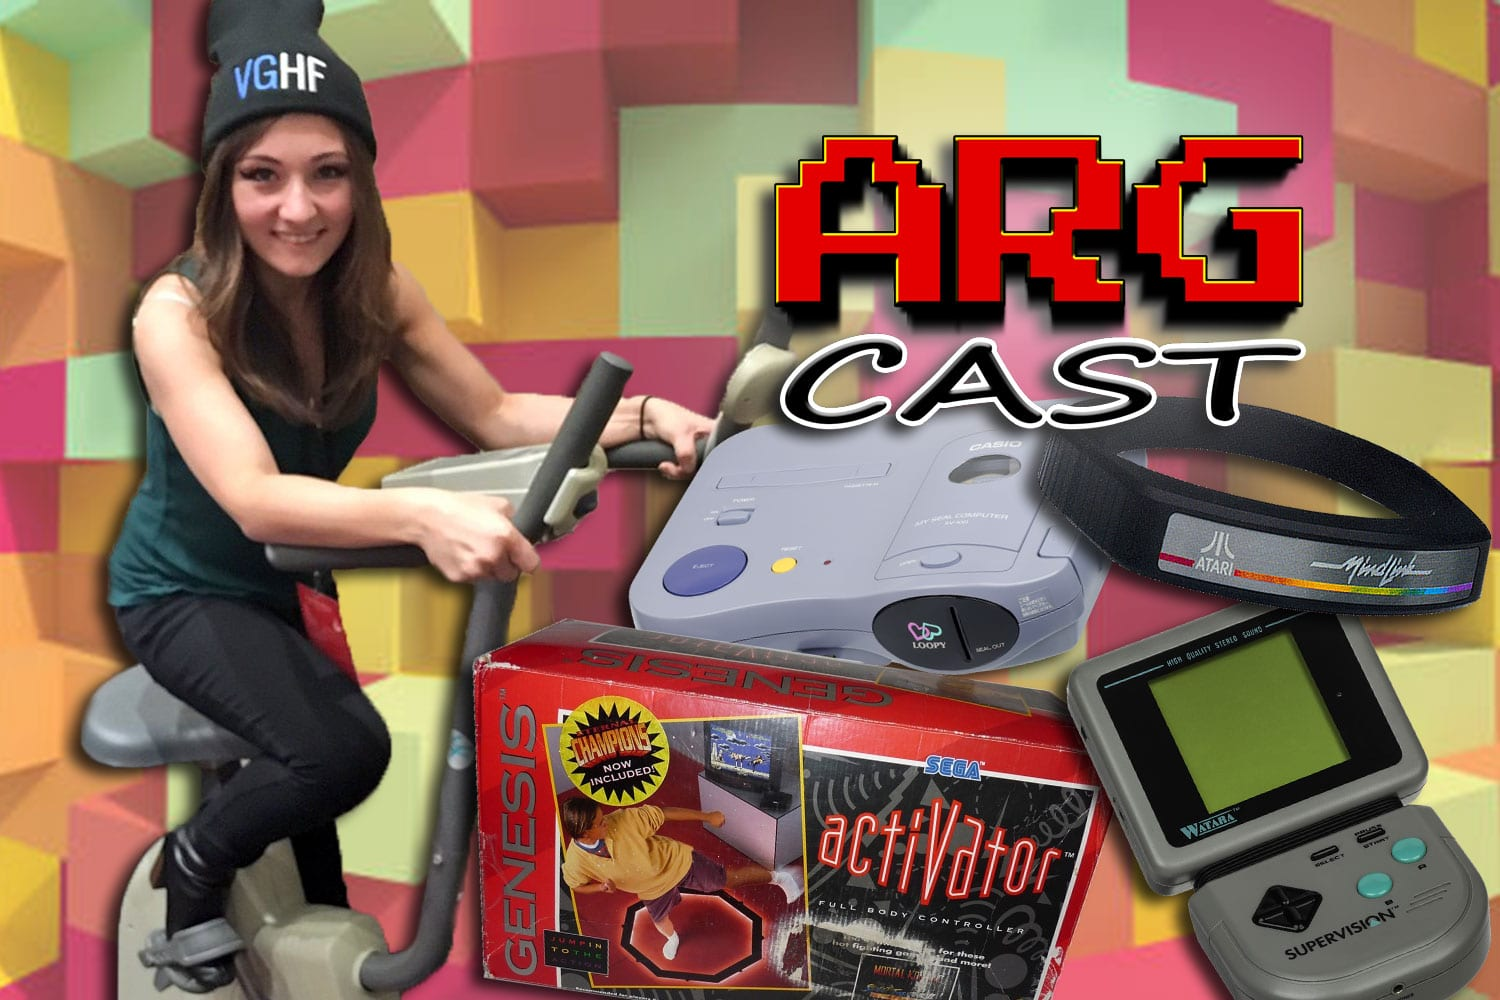 ARGcast #111: Obscure Consoles and Peripherals with Kelsey Lewin